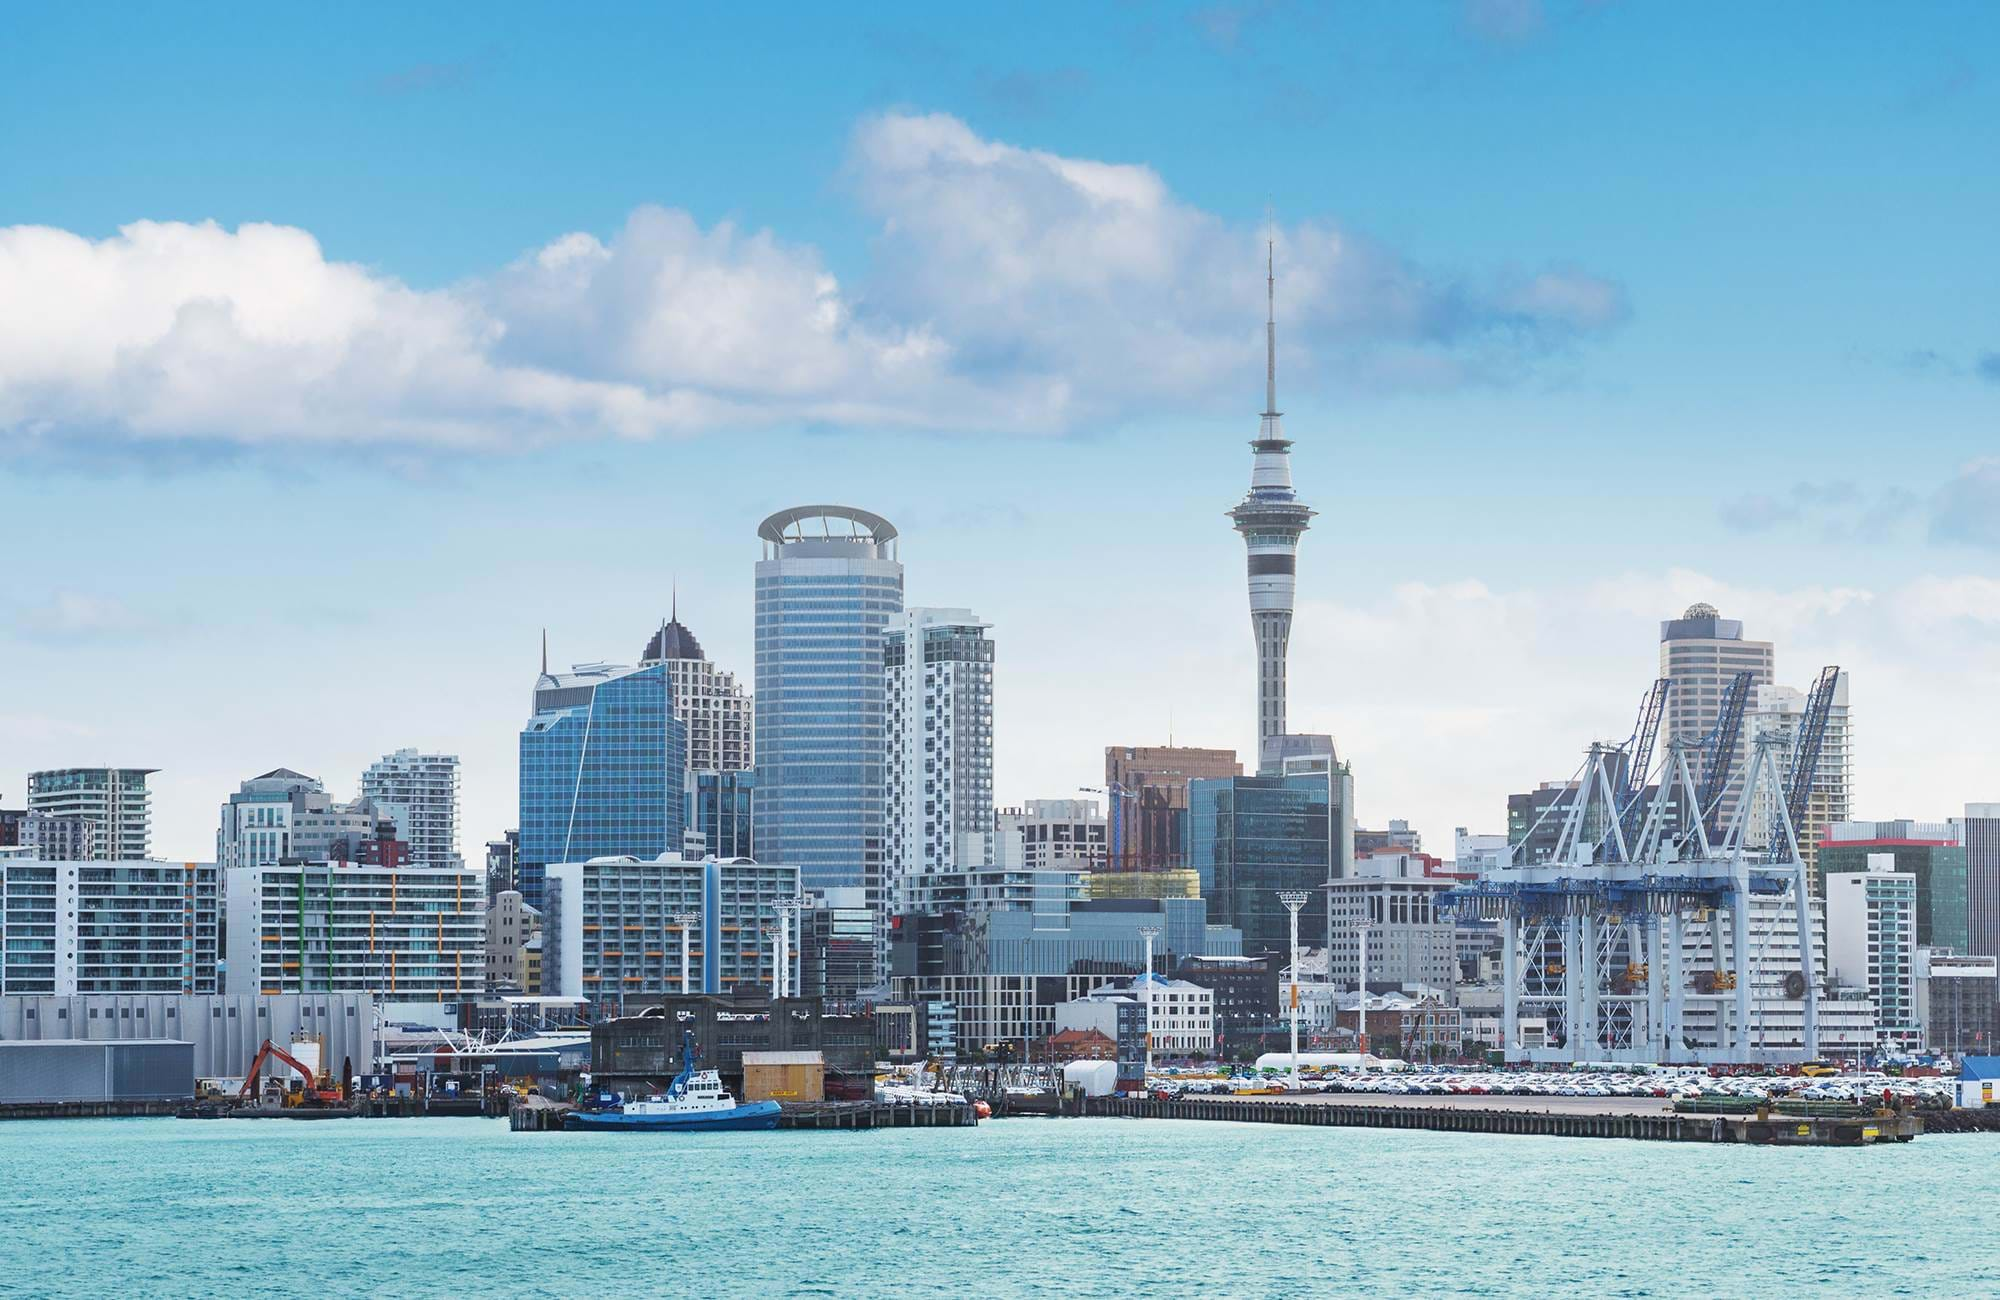 new-zealand-auckland-city-image